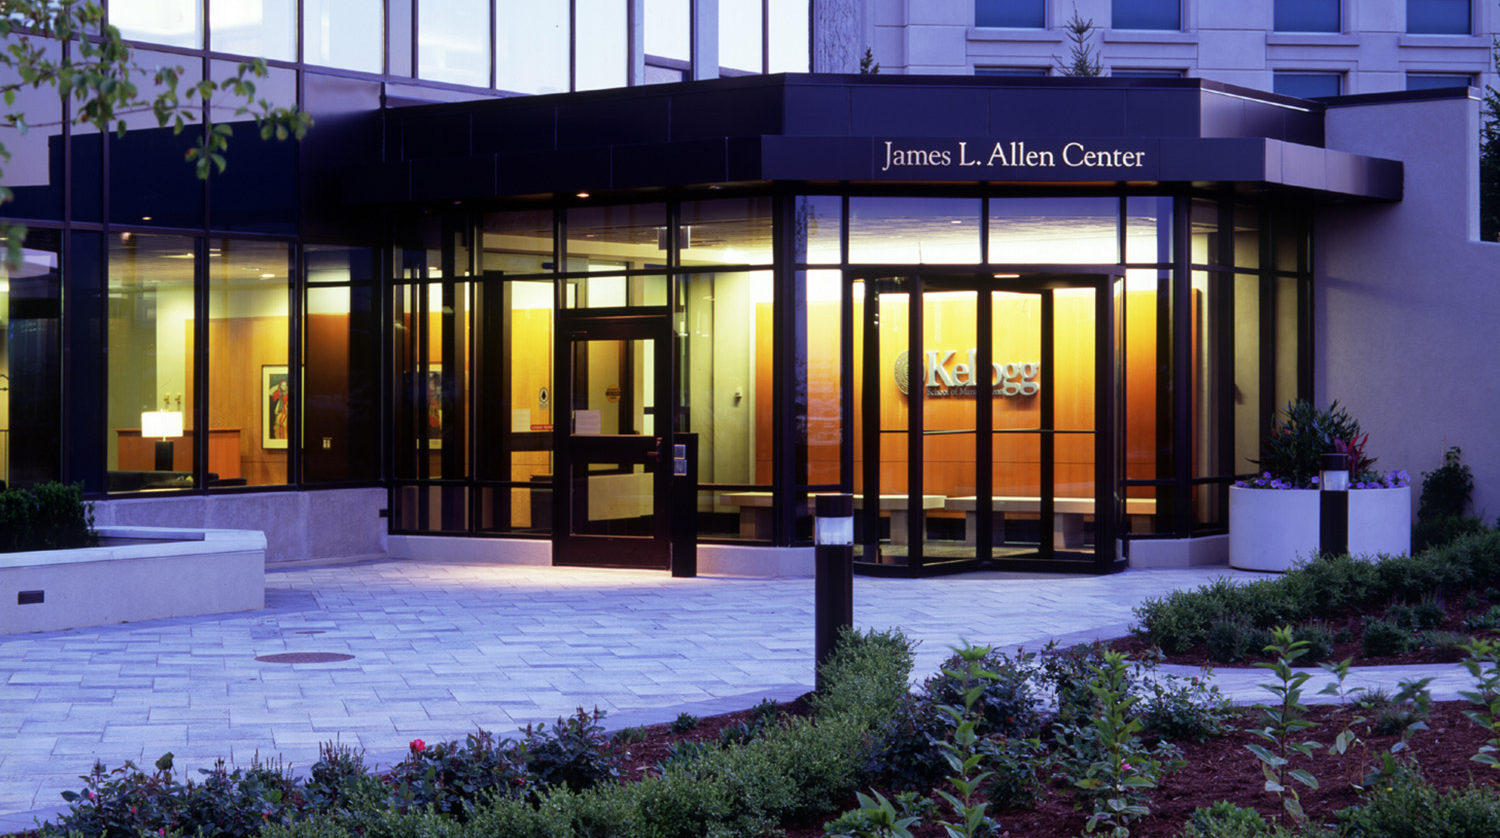 Northwestern University Kellogg Graduate School of Management James L. Allen Center exterior at night